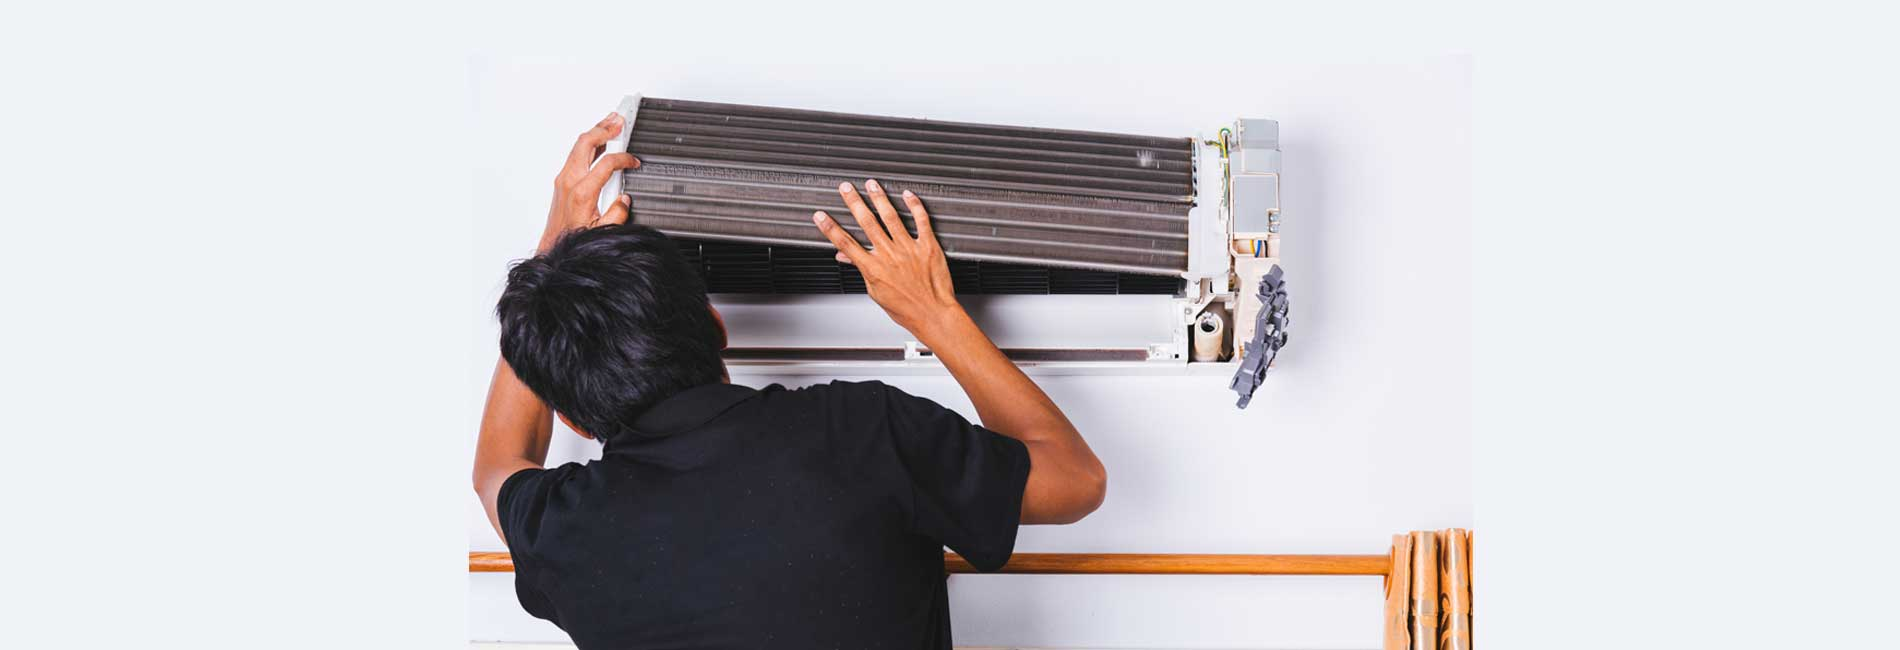 Bluestar AC Uninstallation in Thoraipakkam